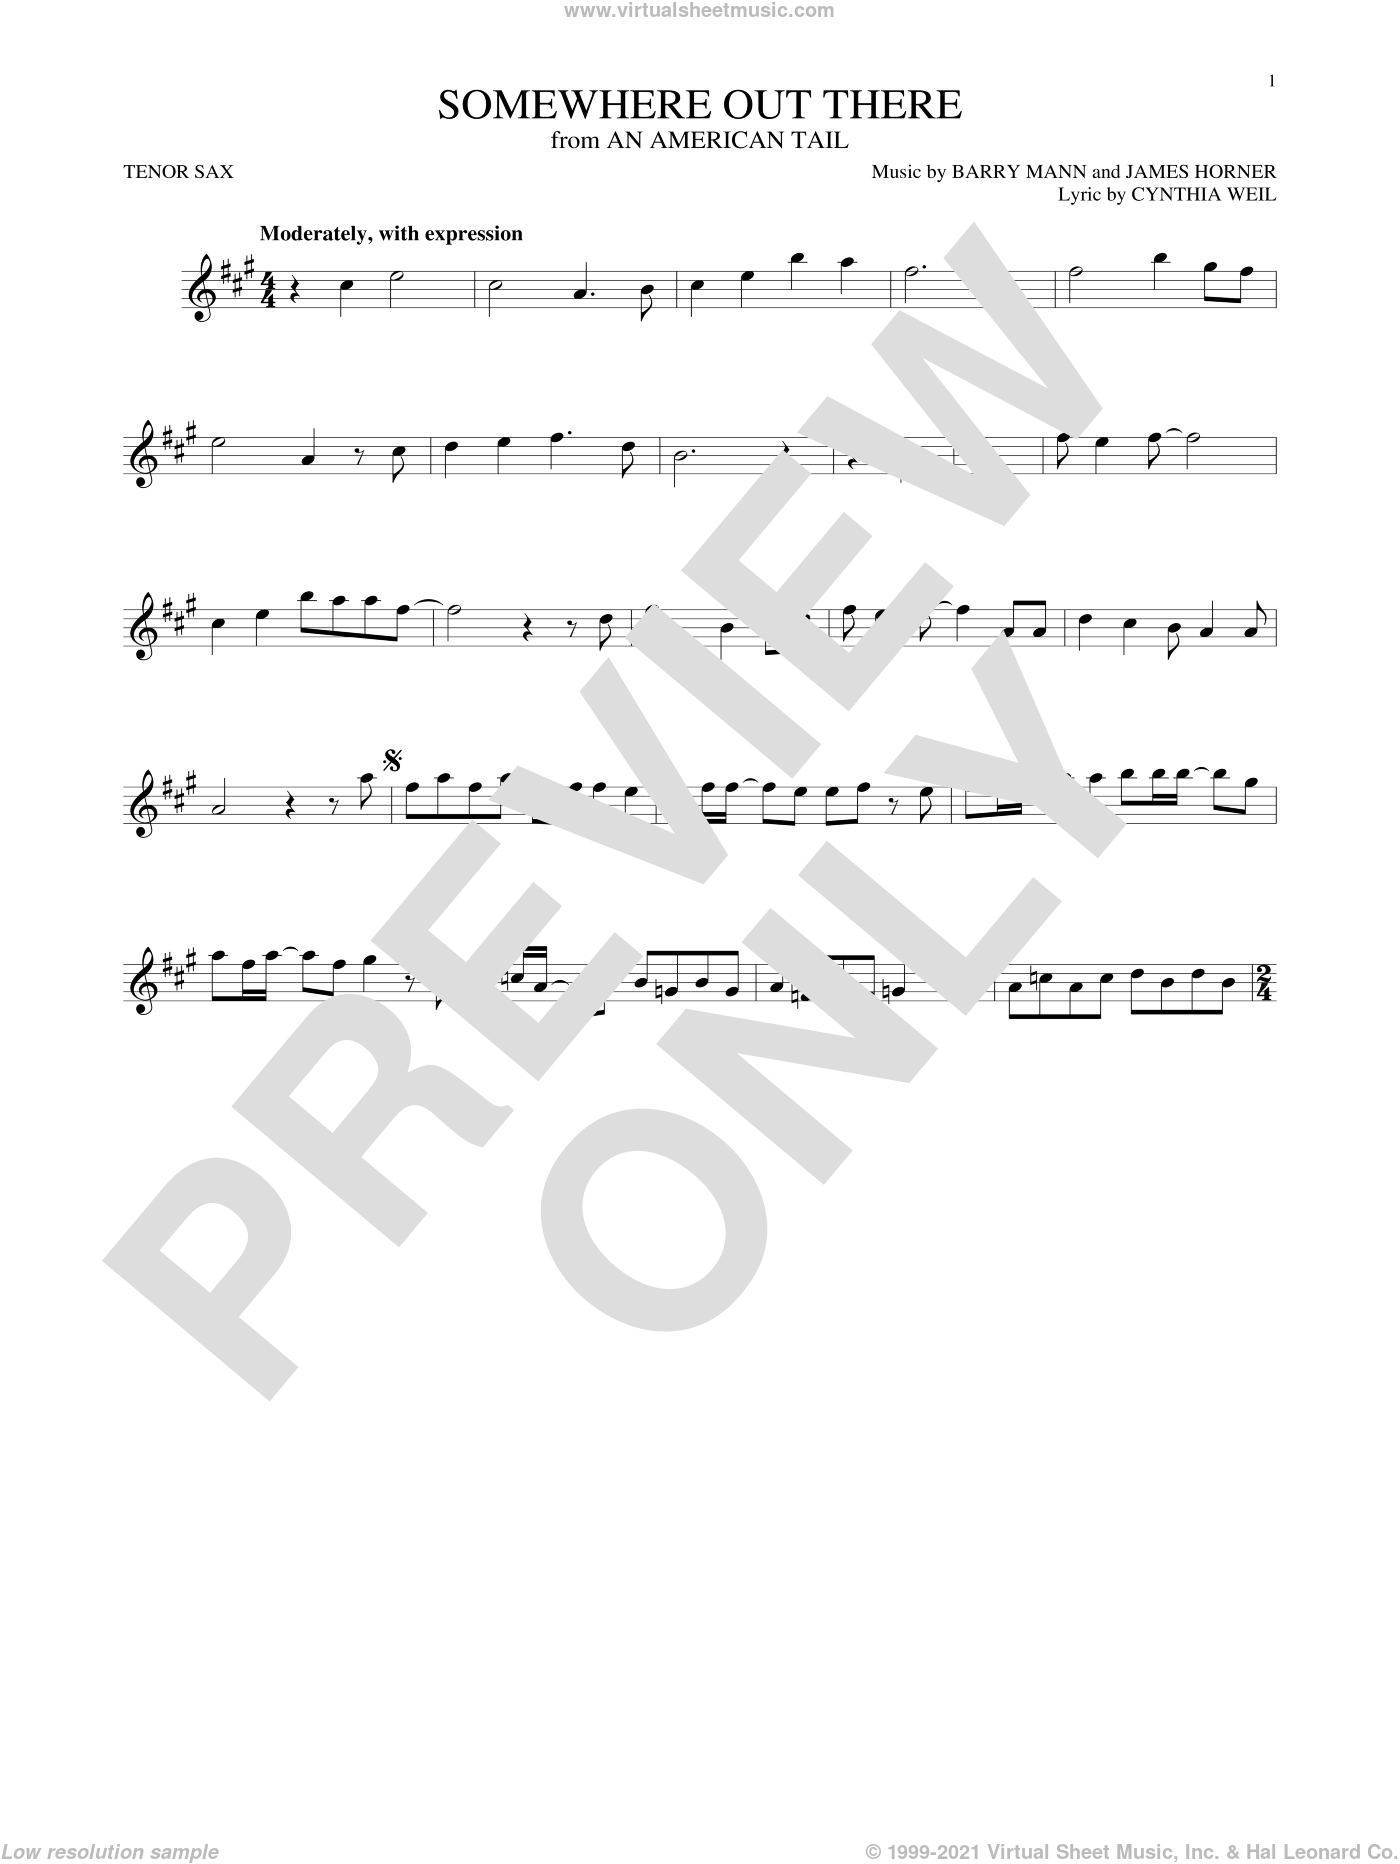 Somewhere Out There sheet music for tenor saxophone solo by Linda Ronstadt & James Ingram, Barry Mann, Cynthia Weil and James Horner, intermediate skill level